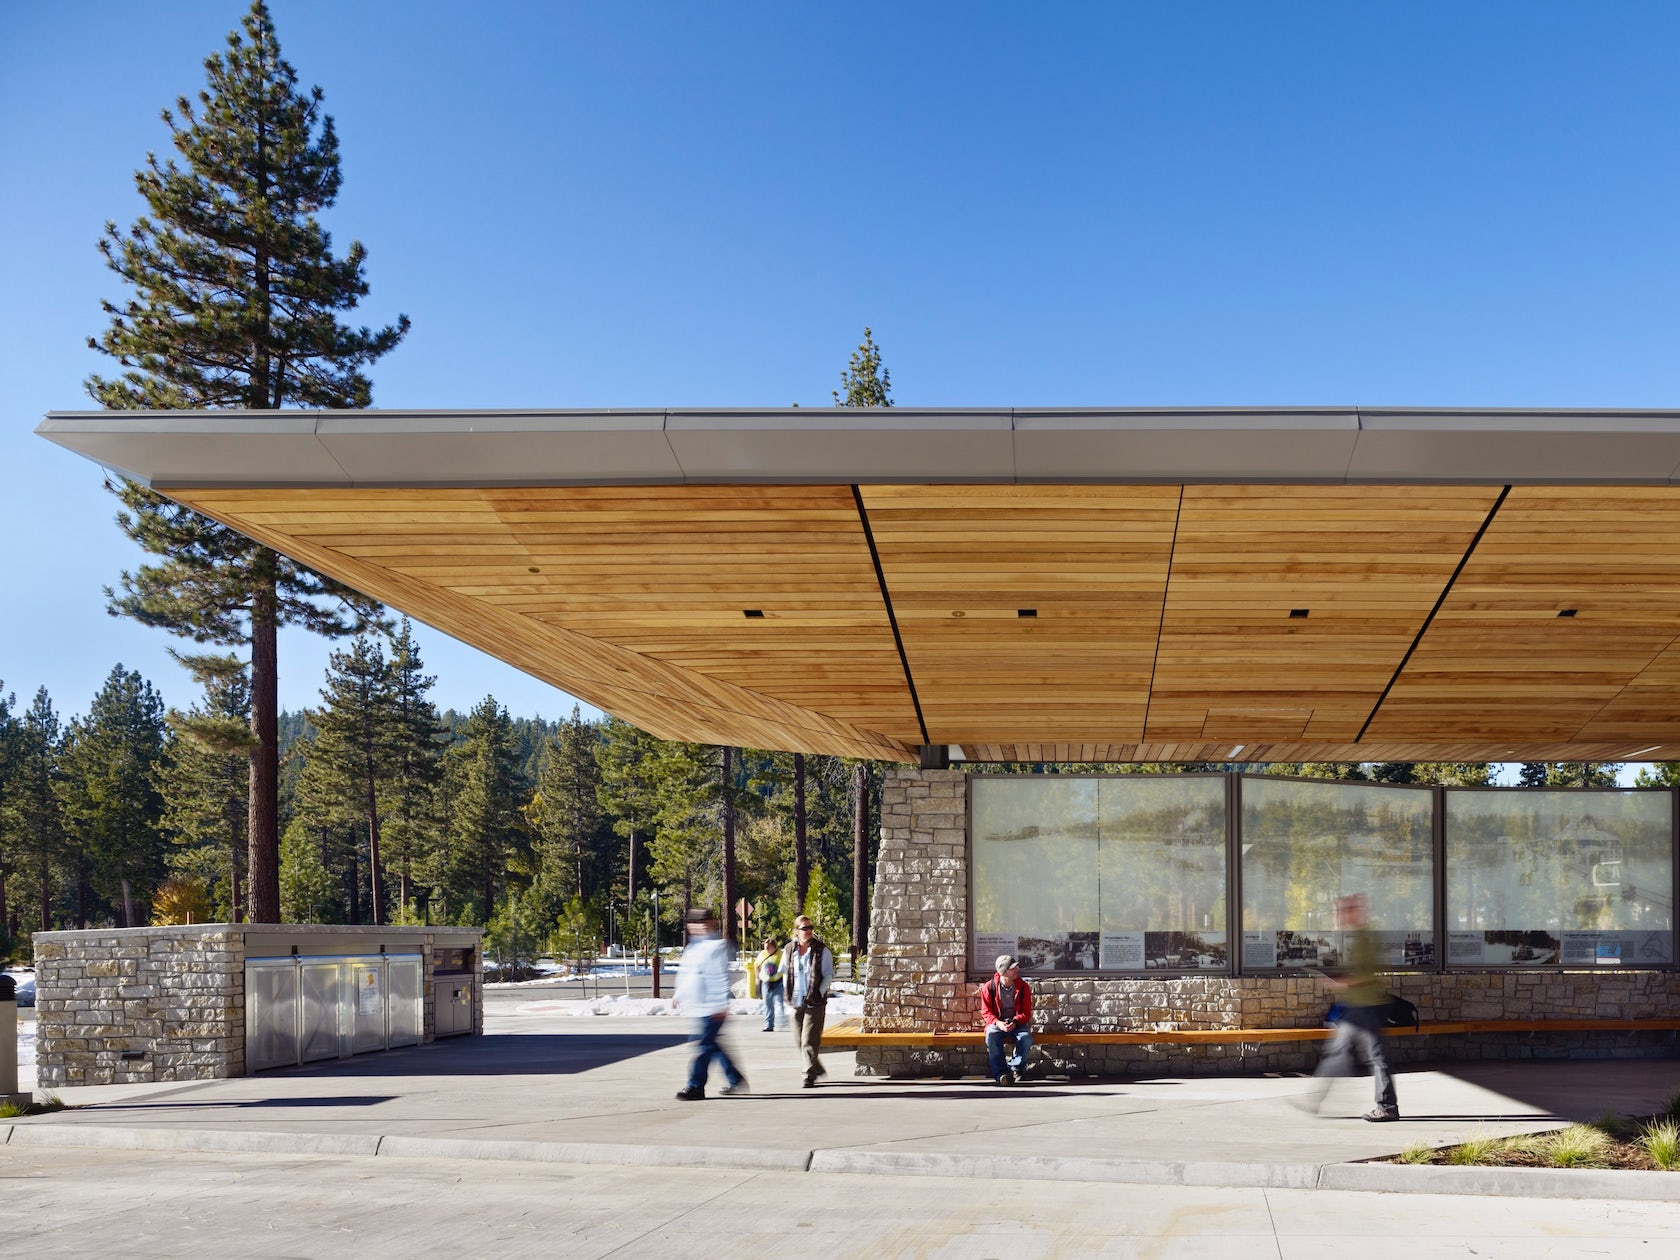 Tahoe city transit center architizer for Lake tahoe architecture firms